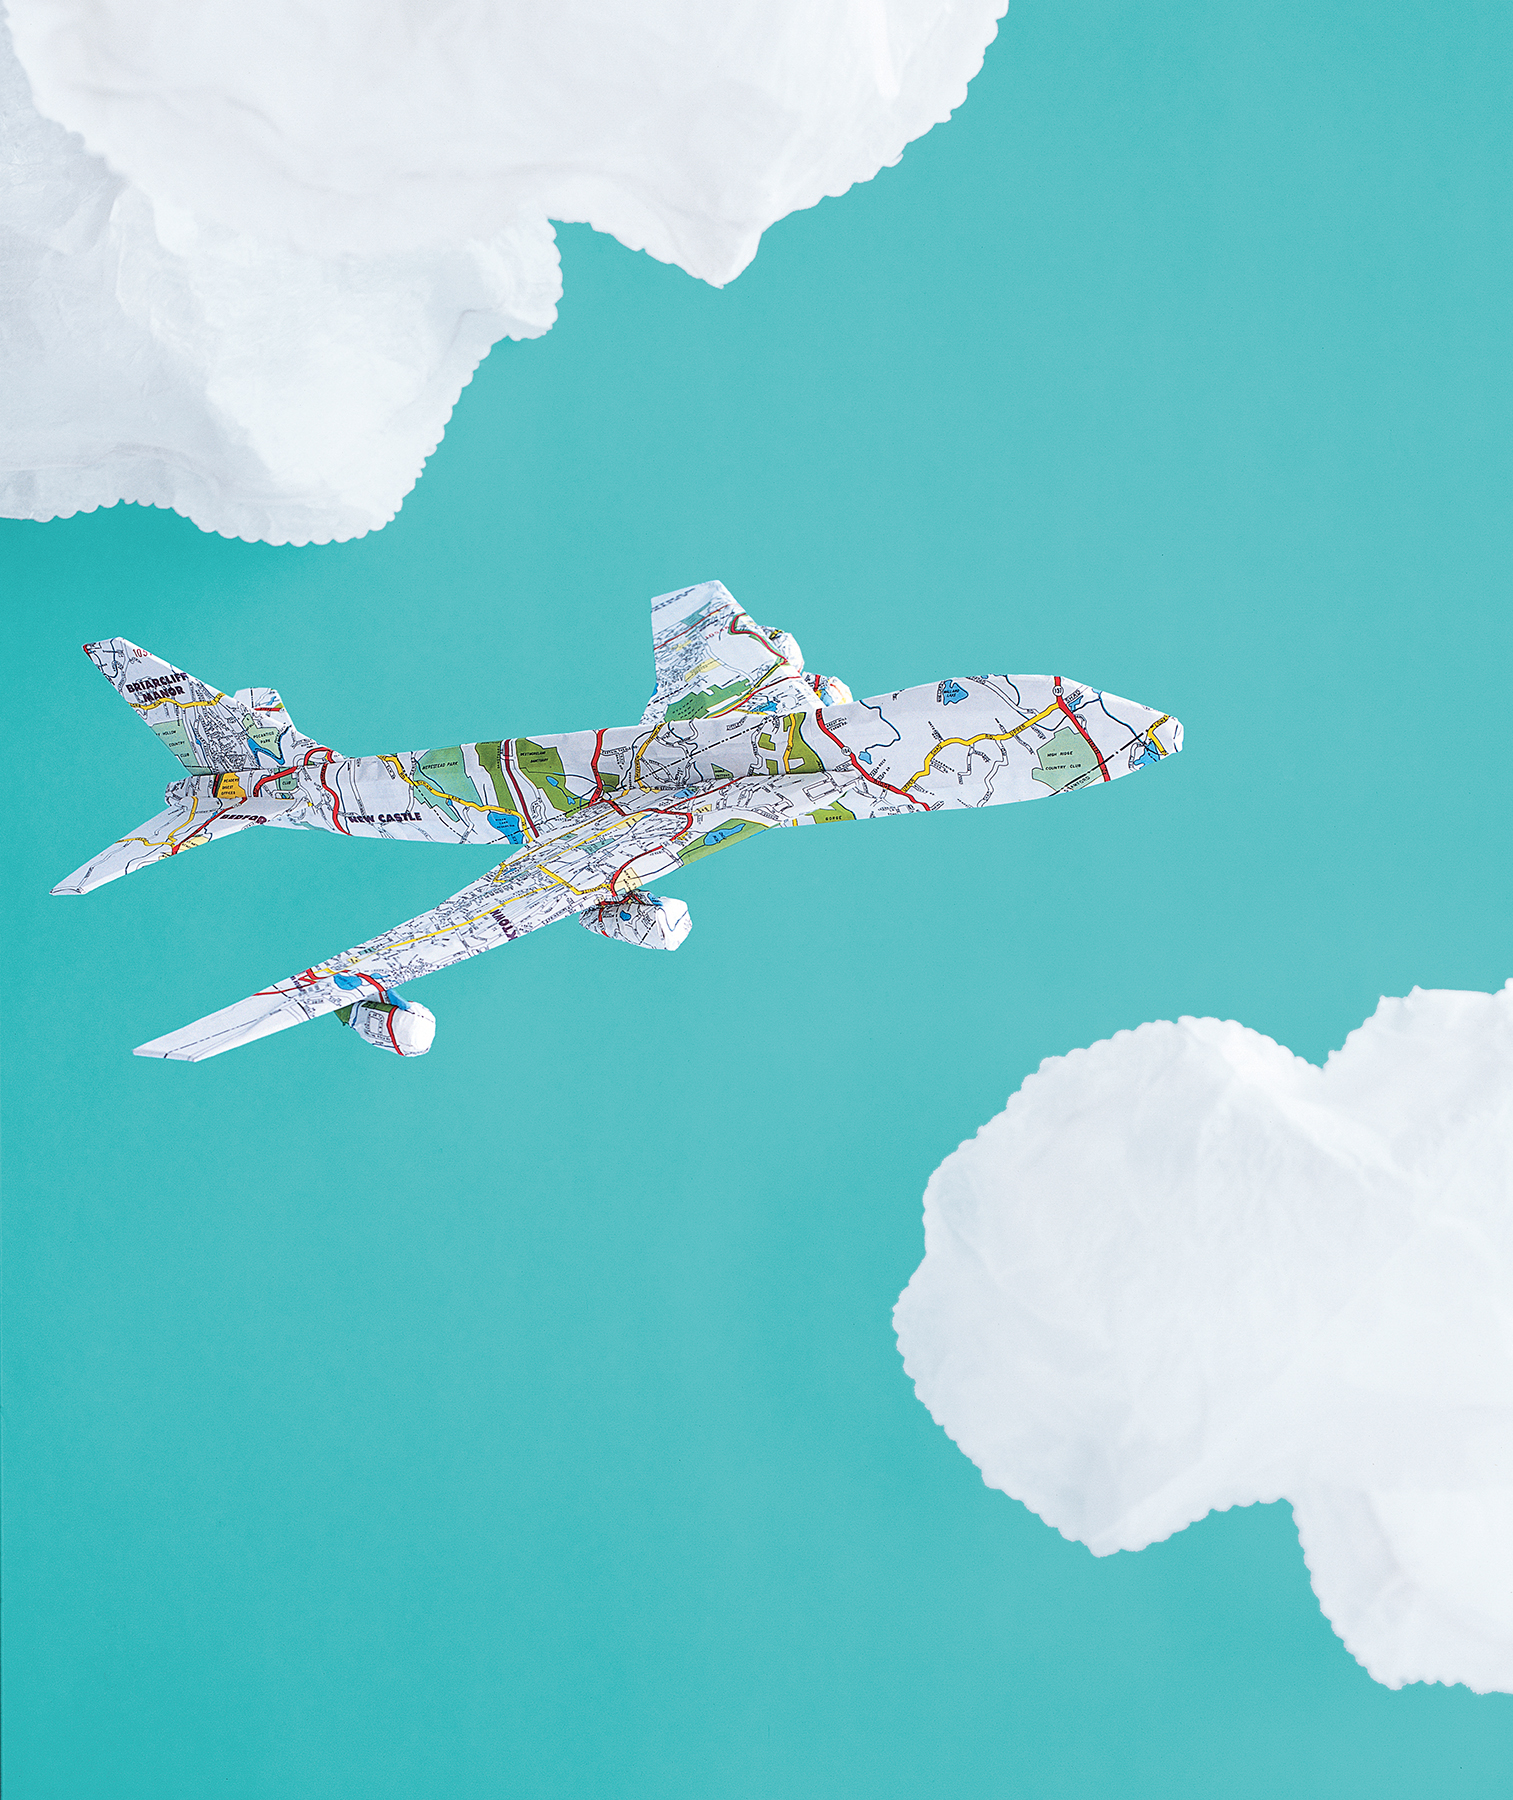 Paper construction of an airplane in clouds by Matthew Sporzynski